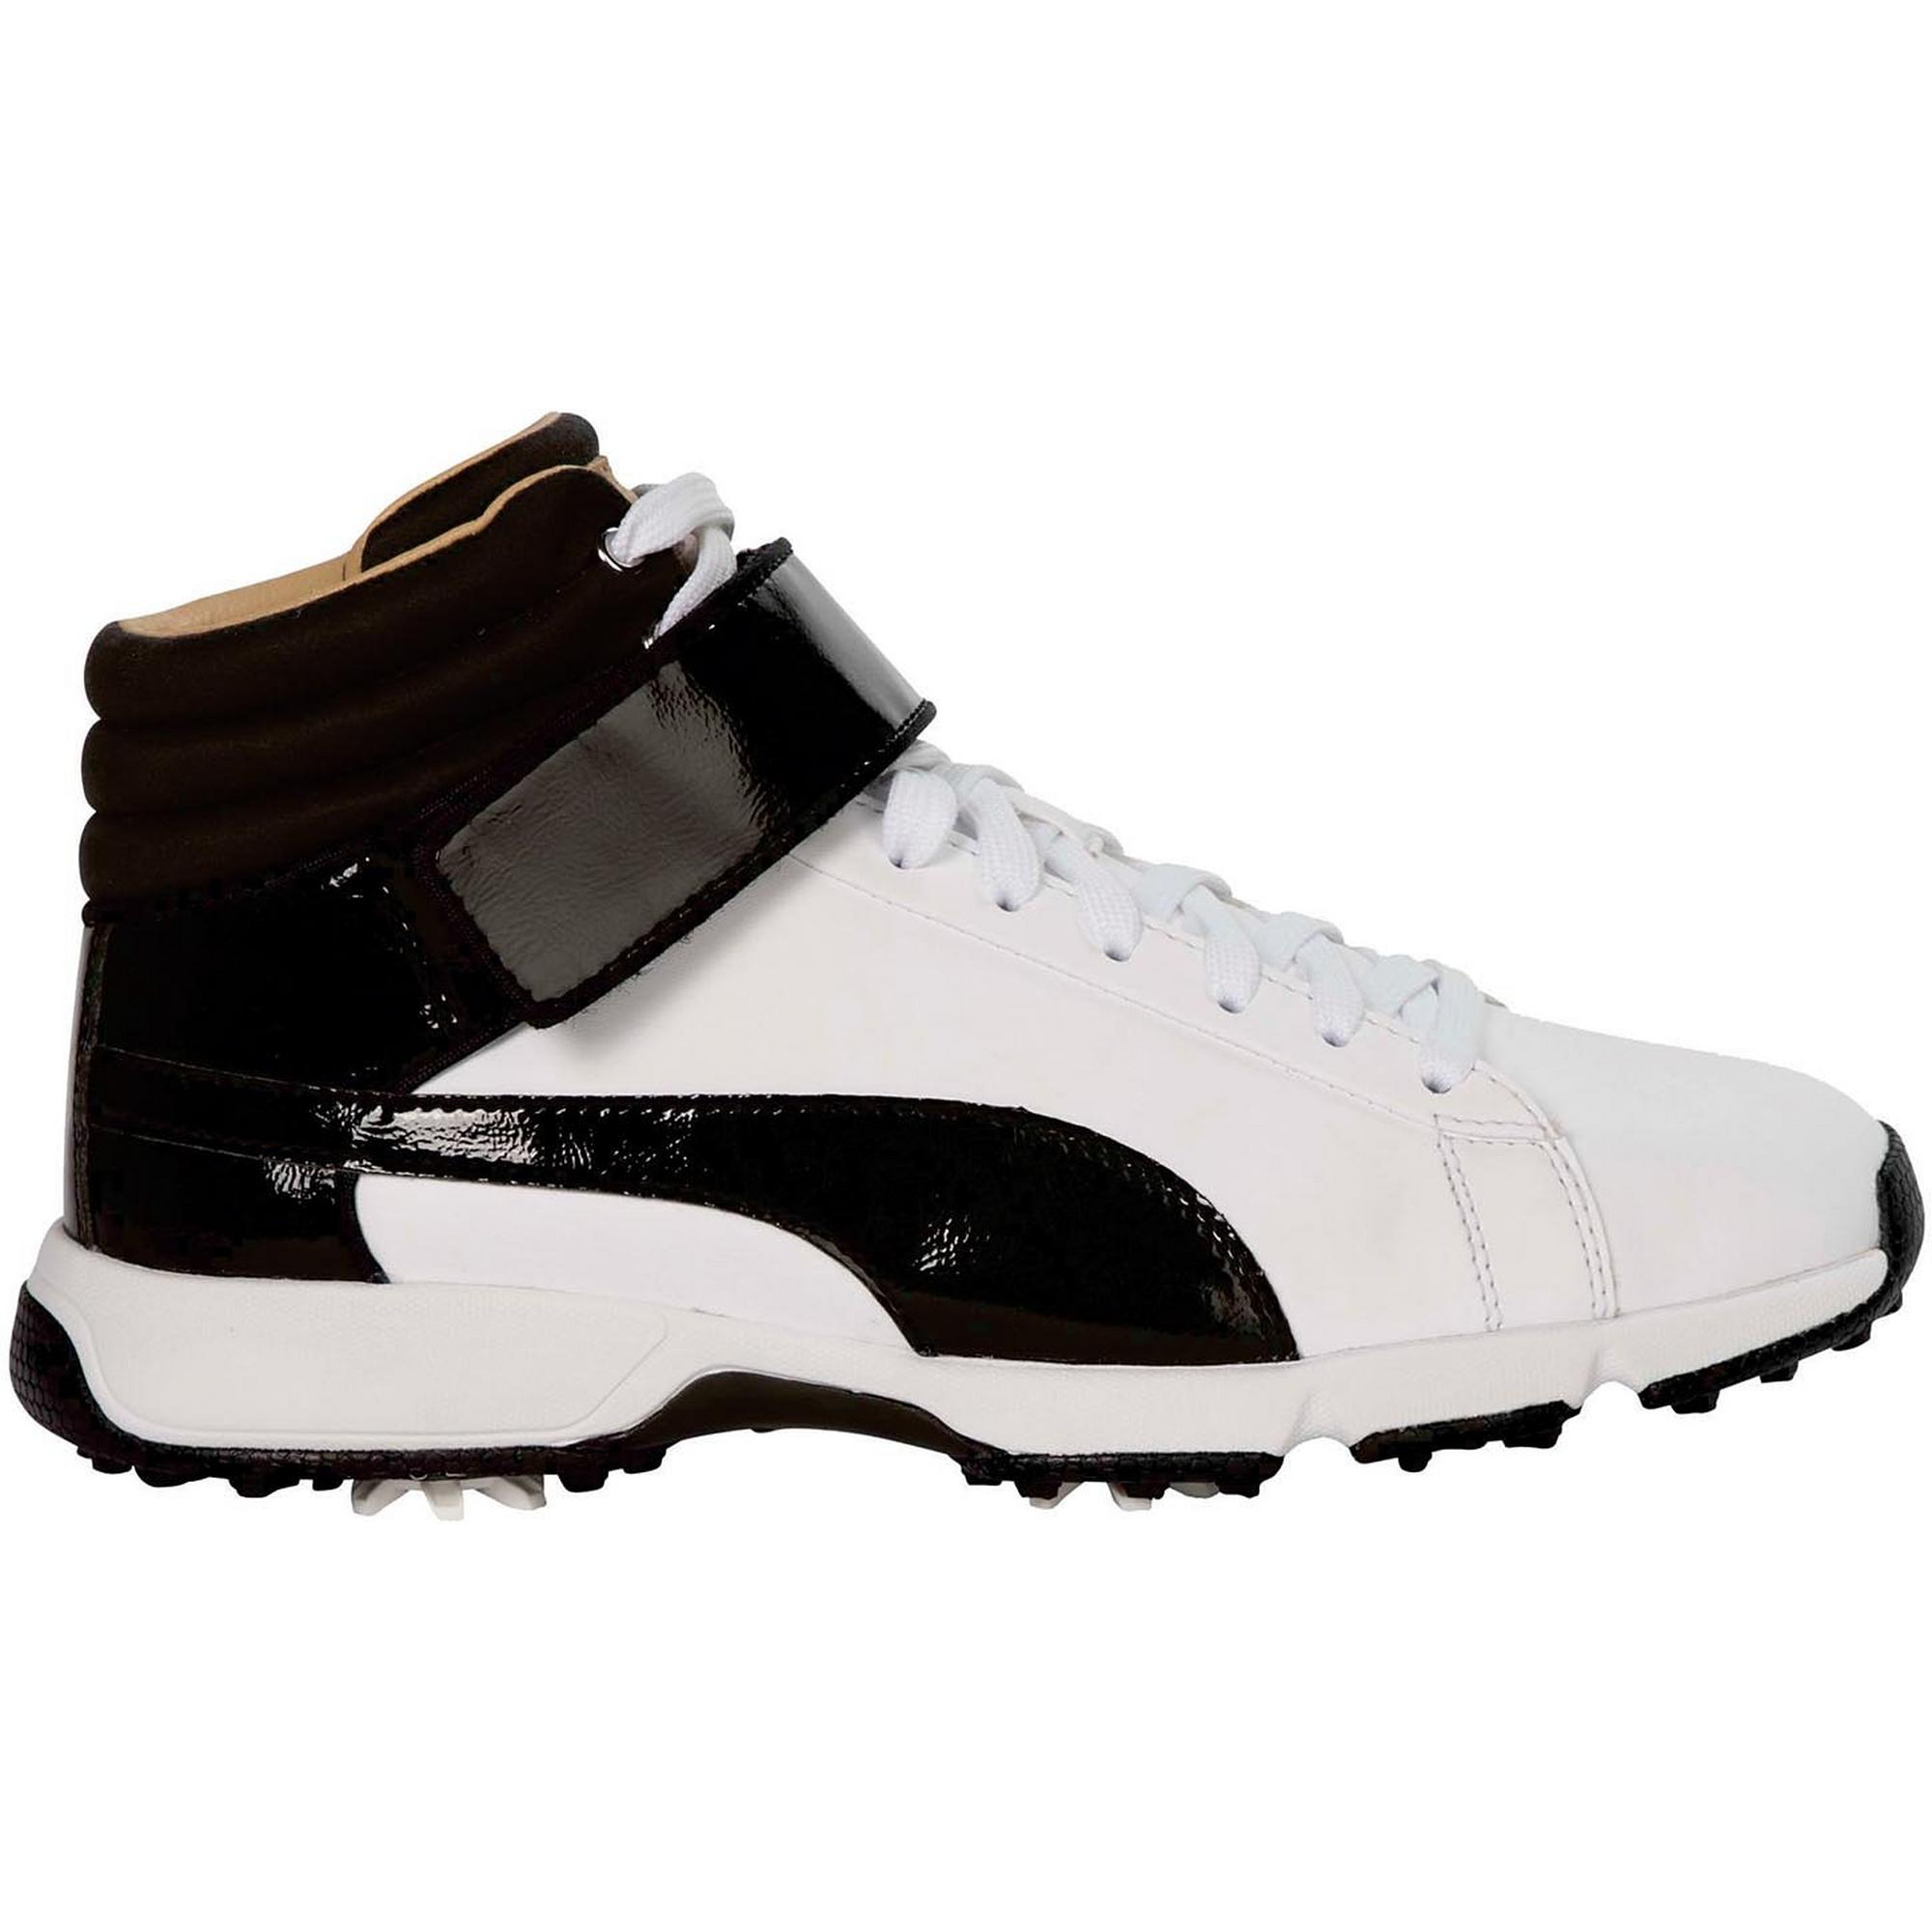 Junior Titantour Hi-Top Spiked Golf Shoe - Wht/Blk